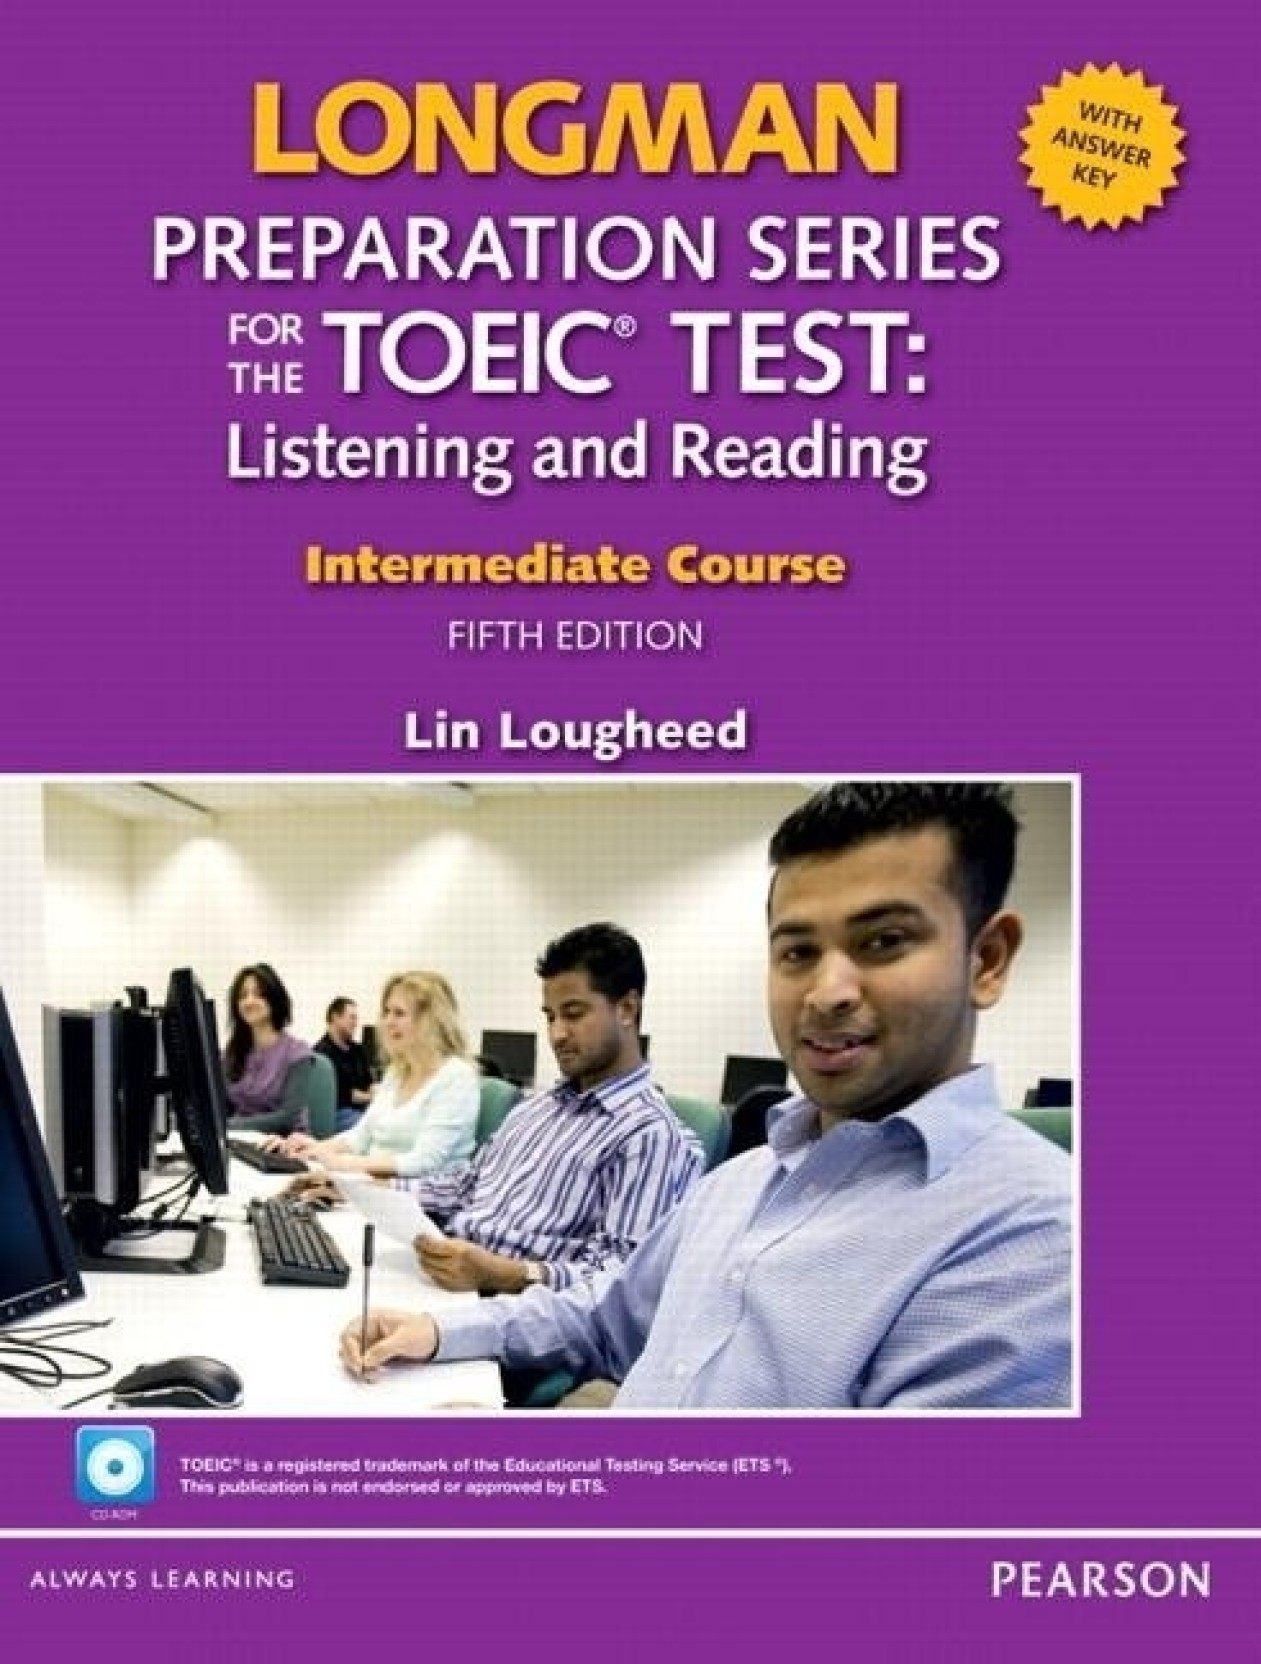 Longman Preparation Series for the new TOEIC test - PDF Free Download